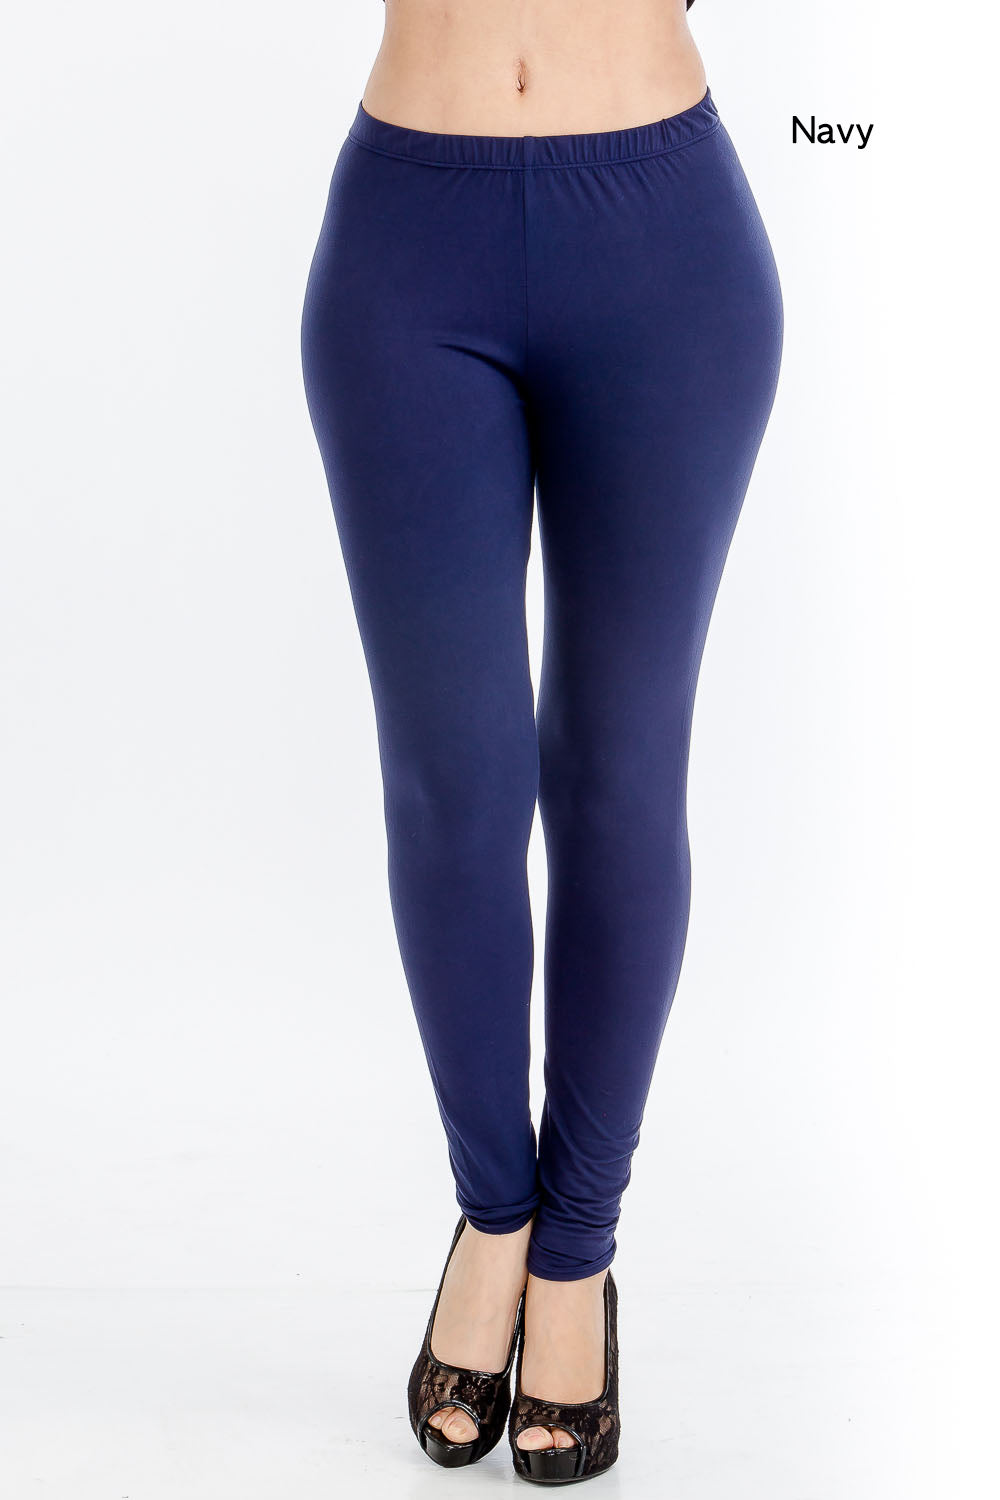 Pants - BP2105X (Plus Size) - Capella Apparel